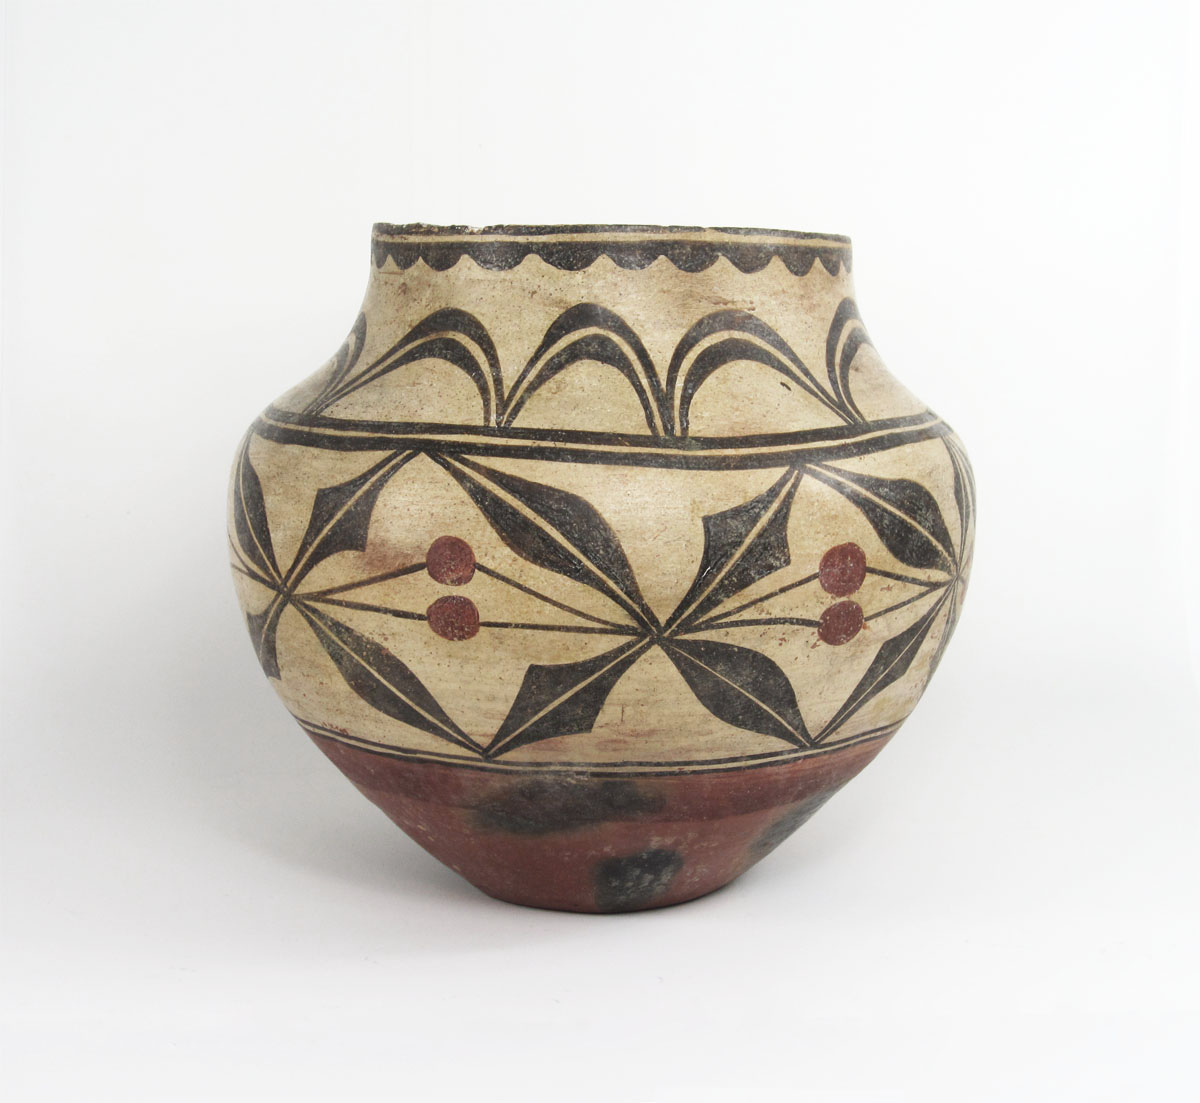 Zia berry and leaf jar, circa 1890-1910   http://www.marcyburns.com/pottery-collection/zia-polychrome-holly-berry-jar